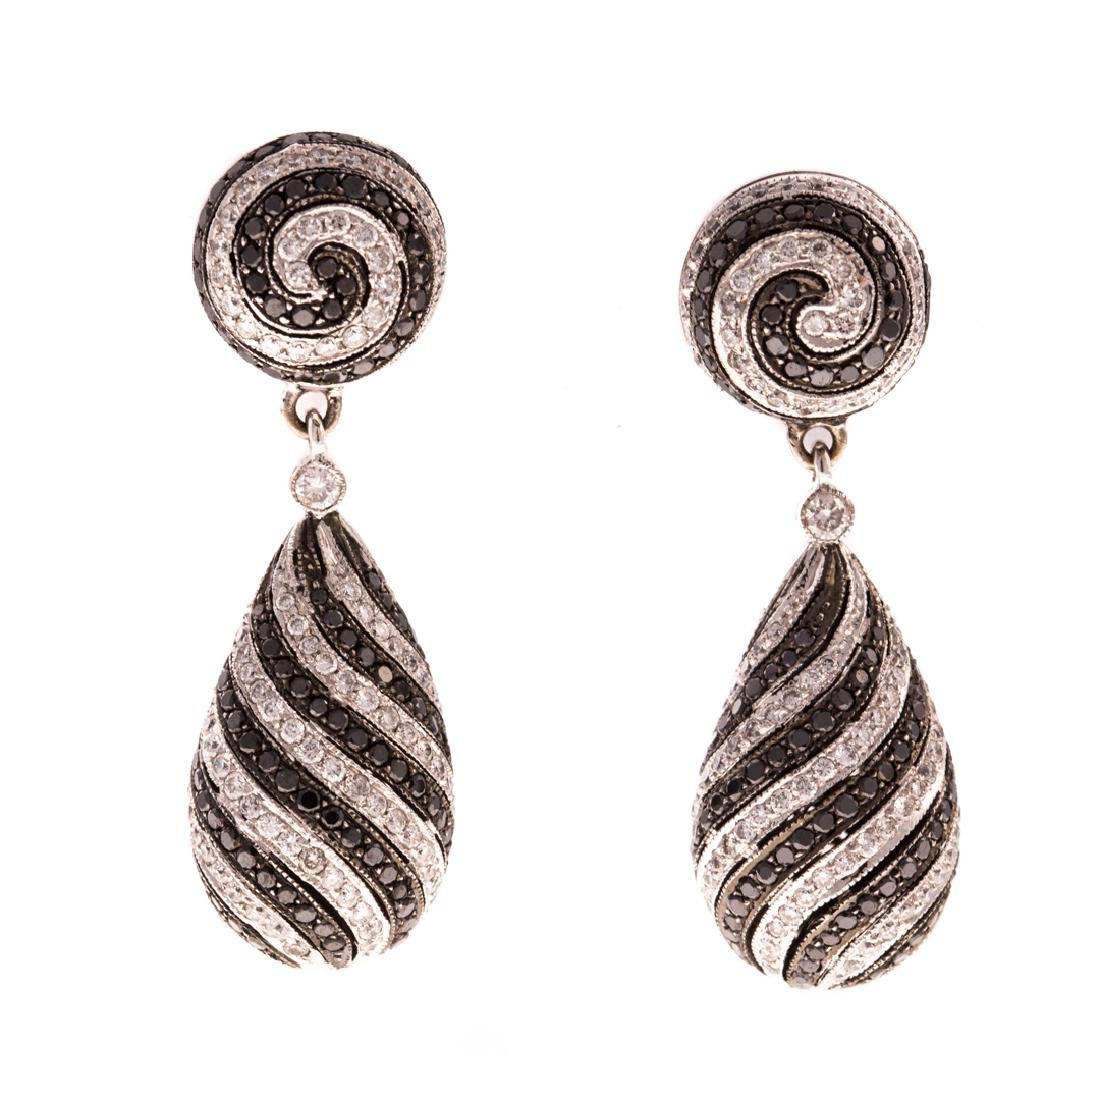 A Pair of Spiral Black & White Diamond Earrings